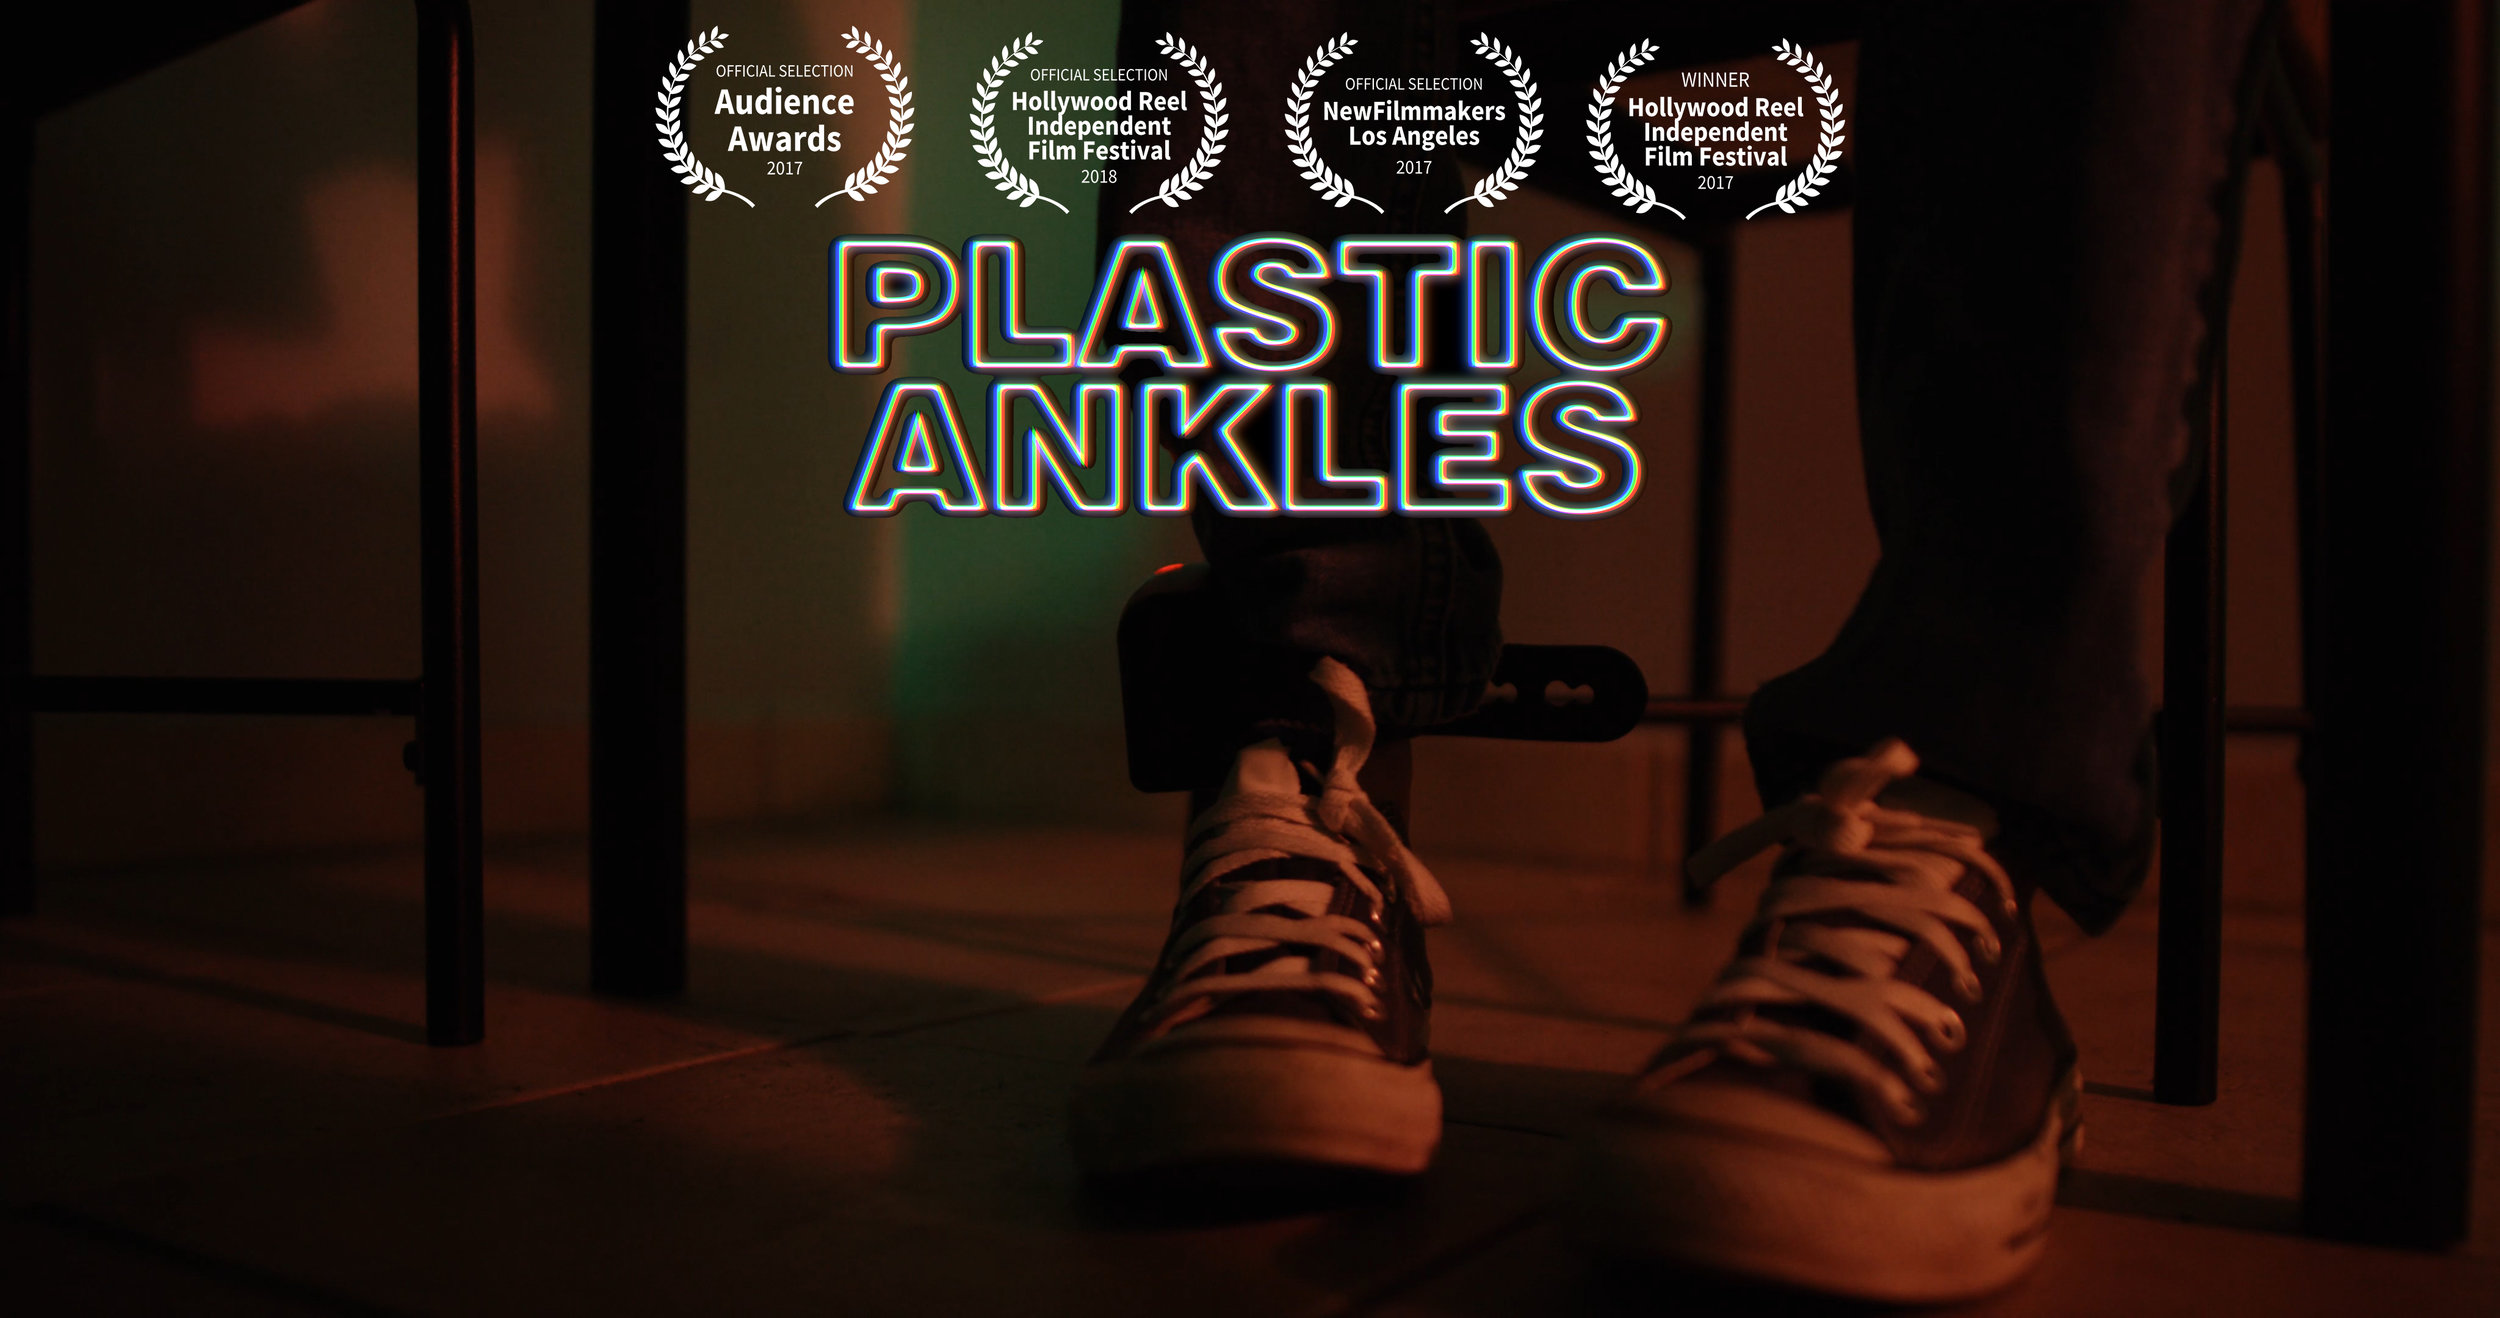 Plastic ankles - Justice doesn't always equal the law.